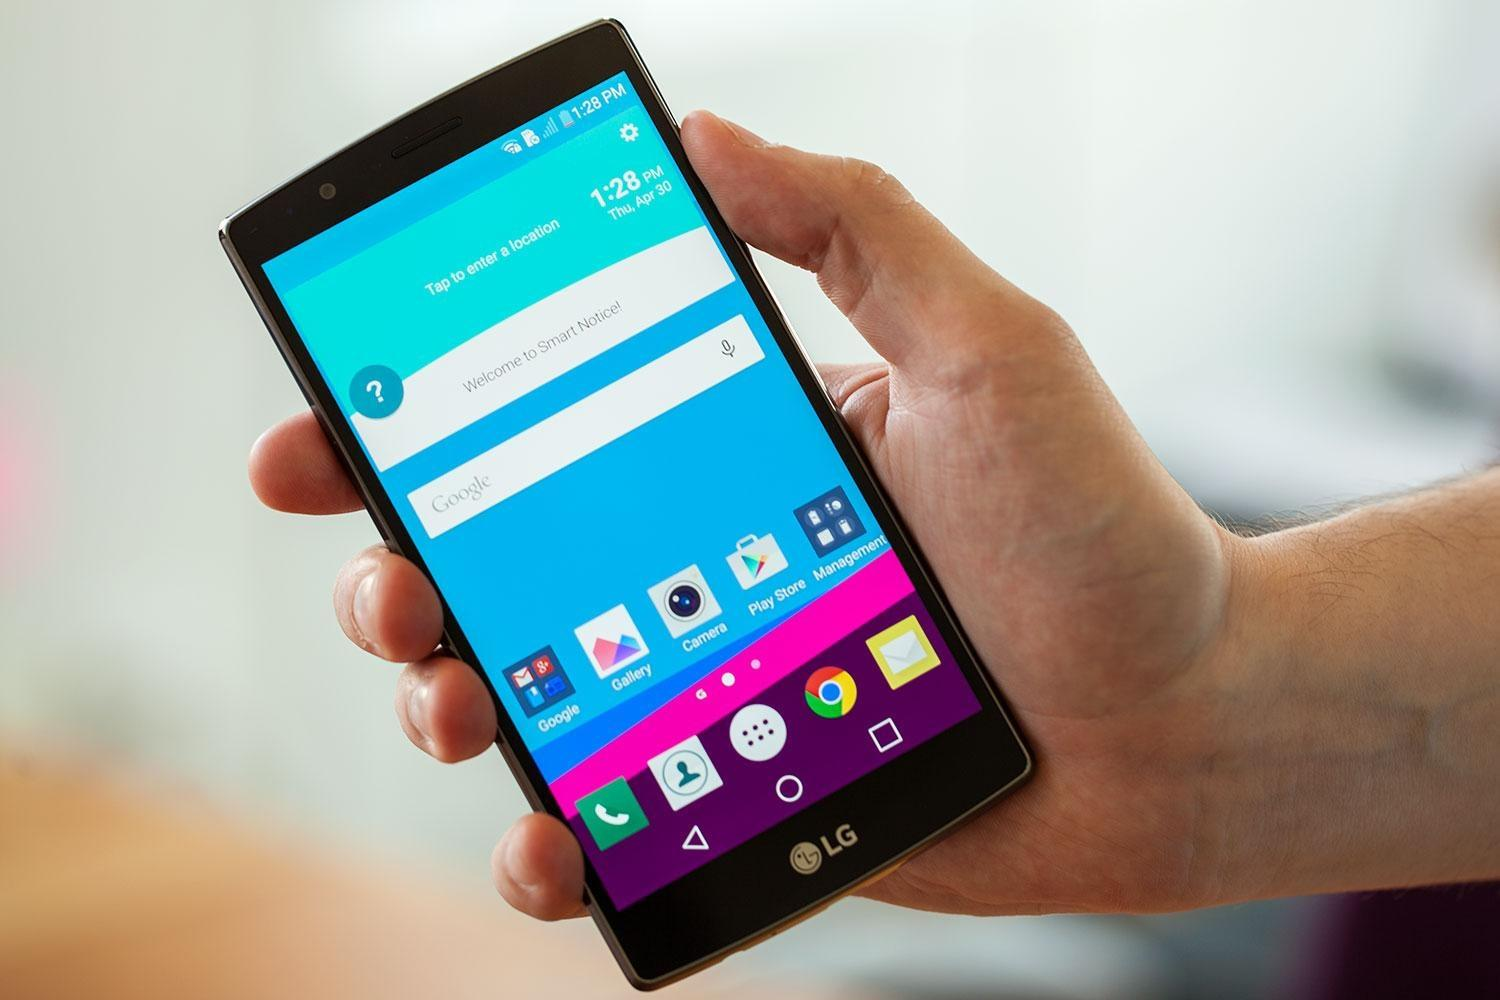 LG G4 Mobile Specification - 16-MP Primary Camera, 3000 mAh Battery and More